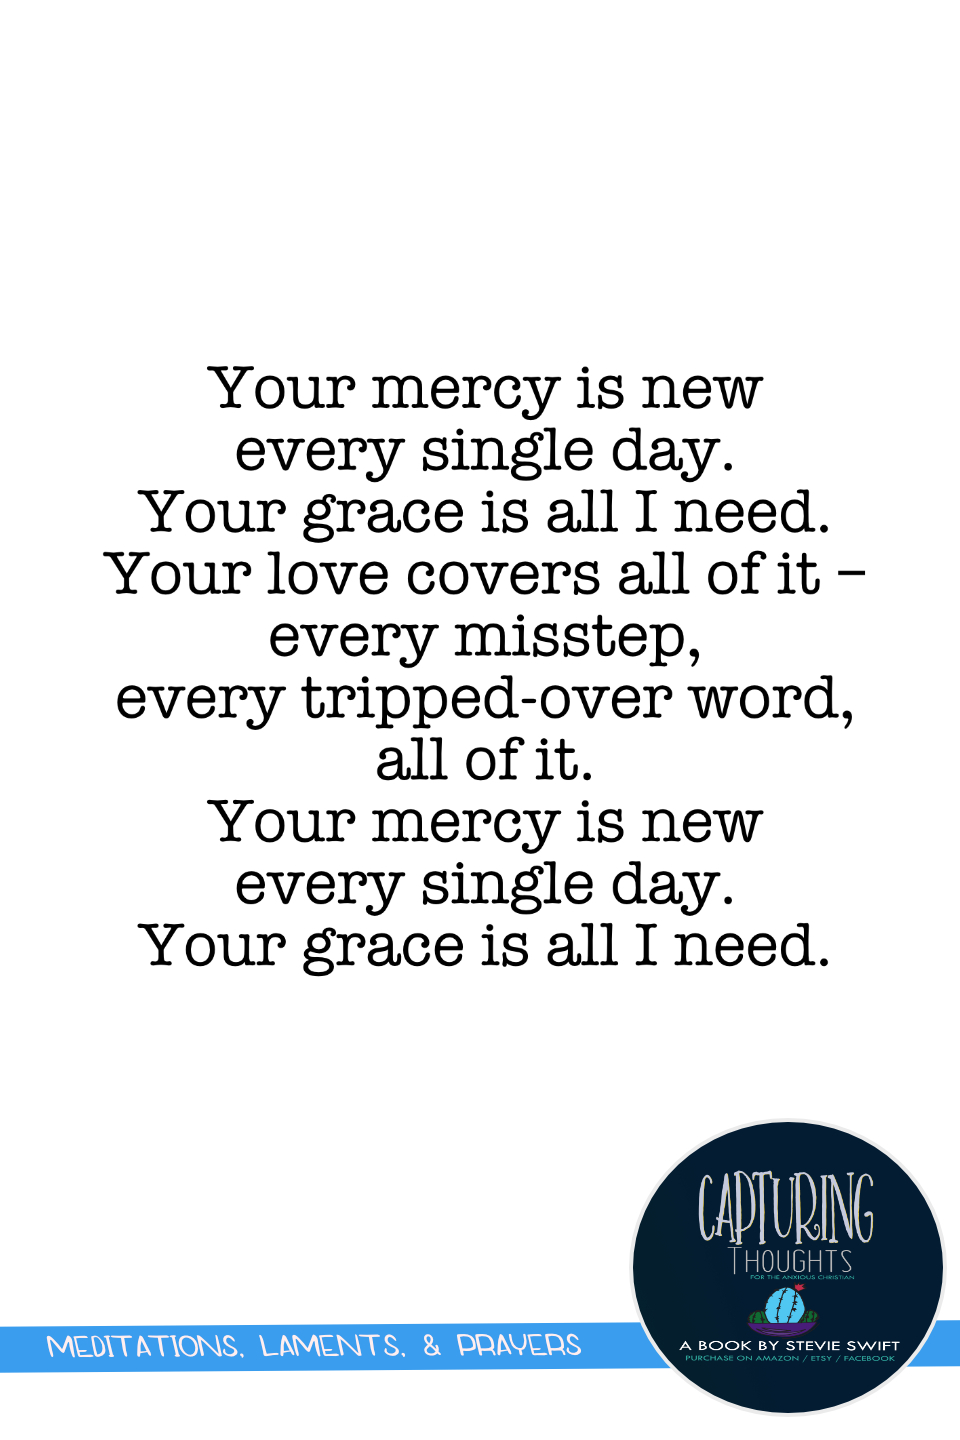 your mercy is new every single day. your grace is all i need. your love covers all of it - every misstep, every tripped-over word, all of it. your mercy is new every single day. your grace is all i need.